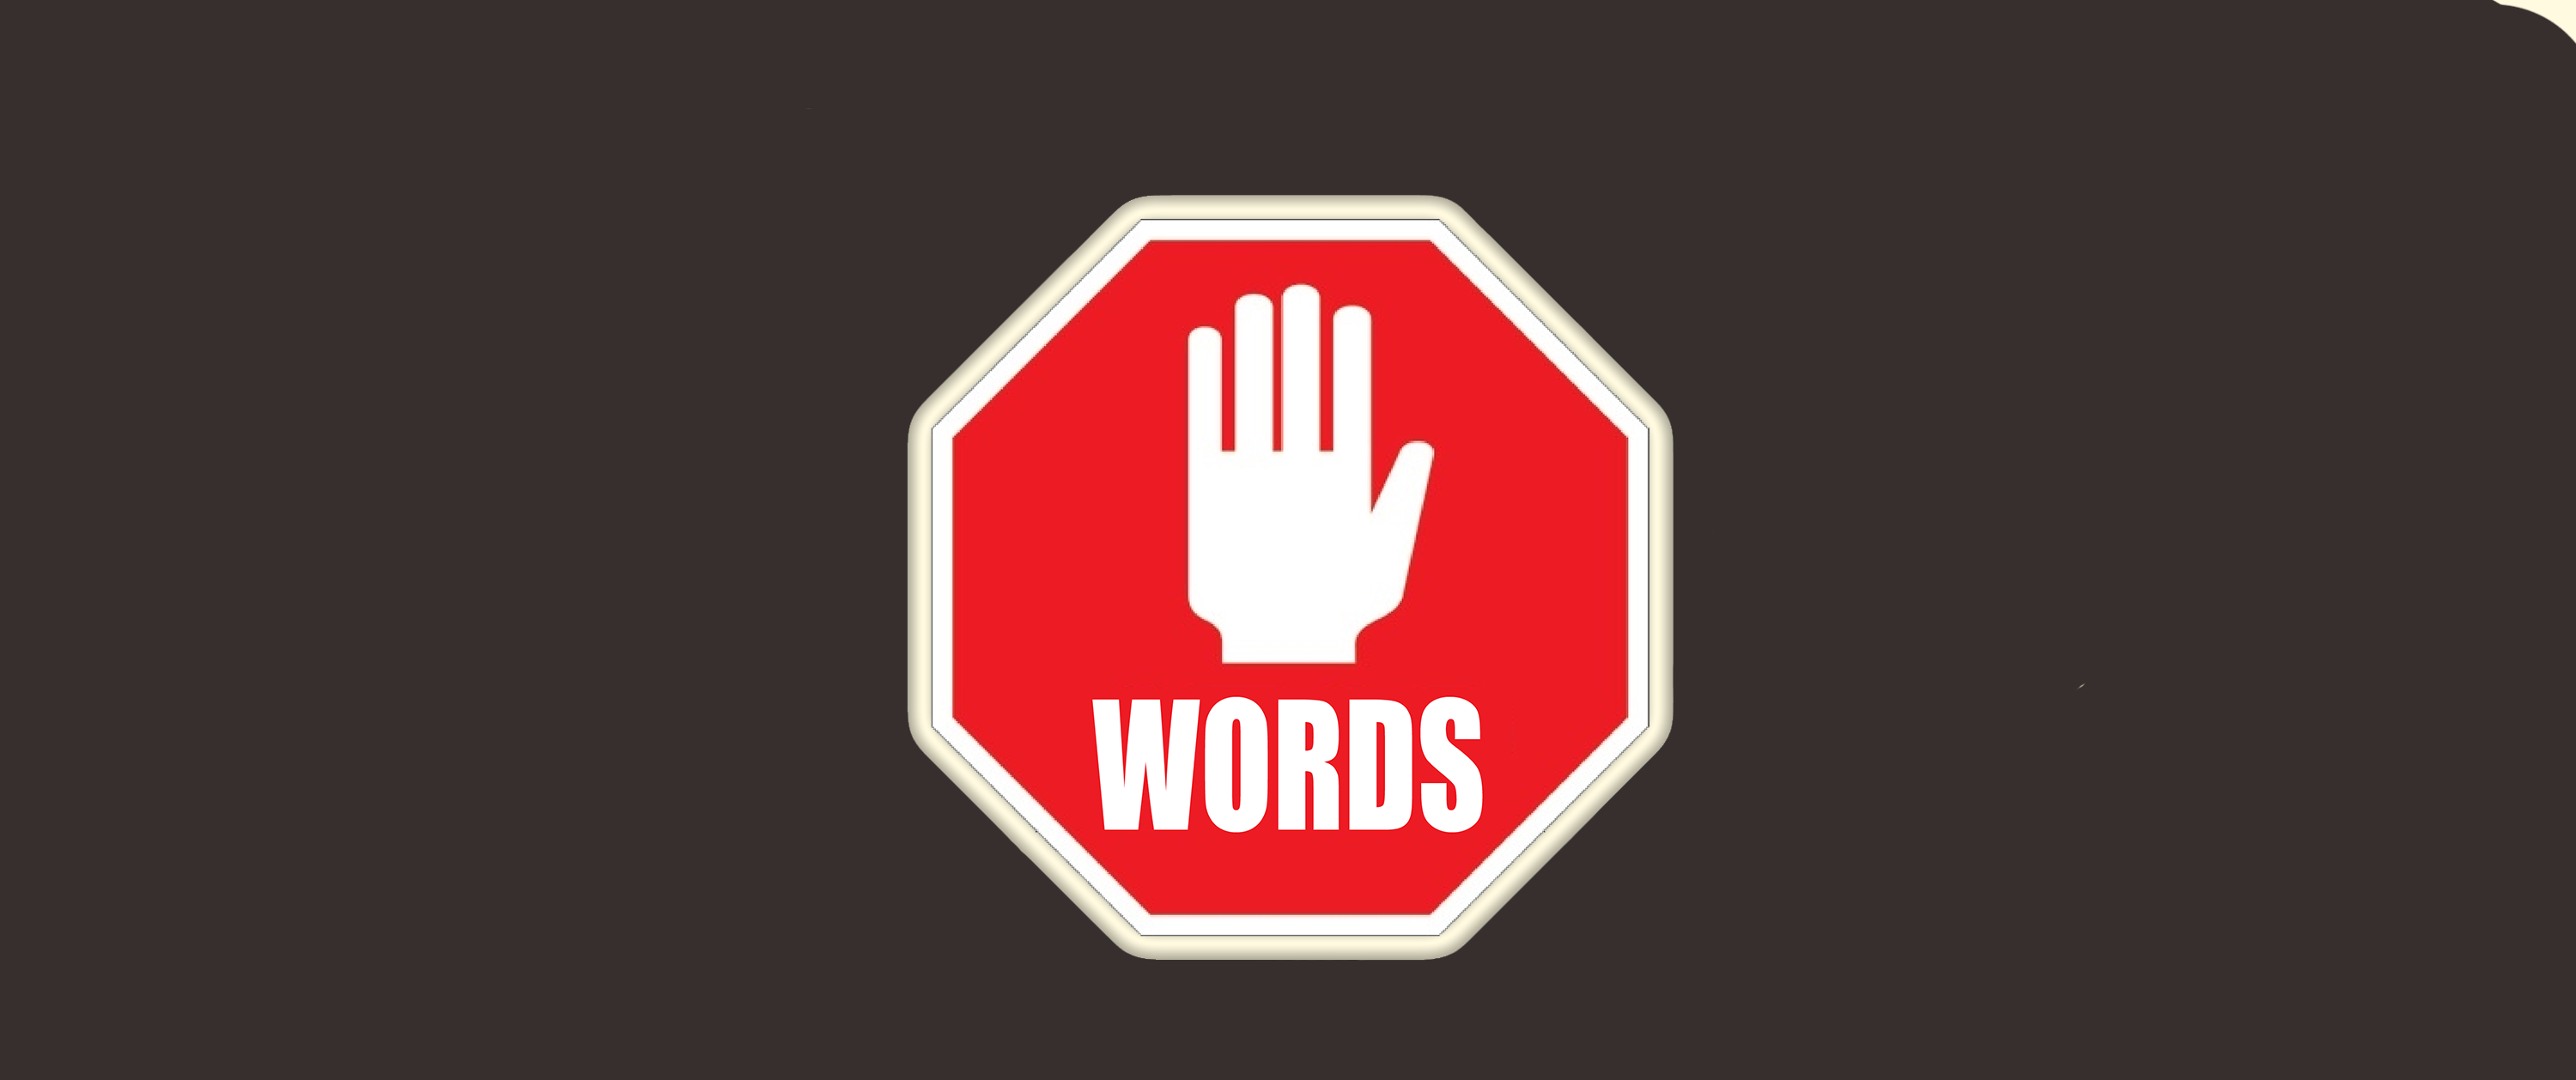 Stop Words_Monash Digital Studio_SEO_Content Optimization